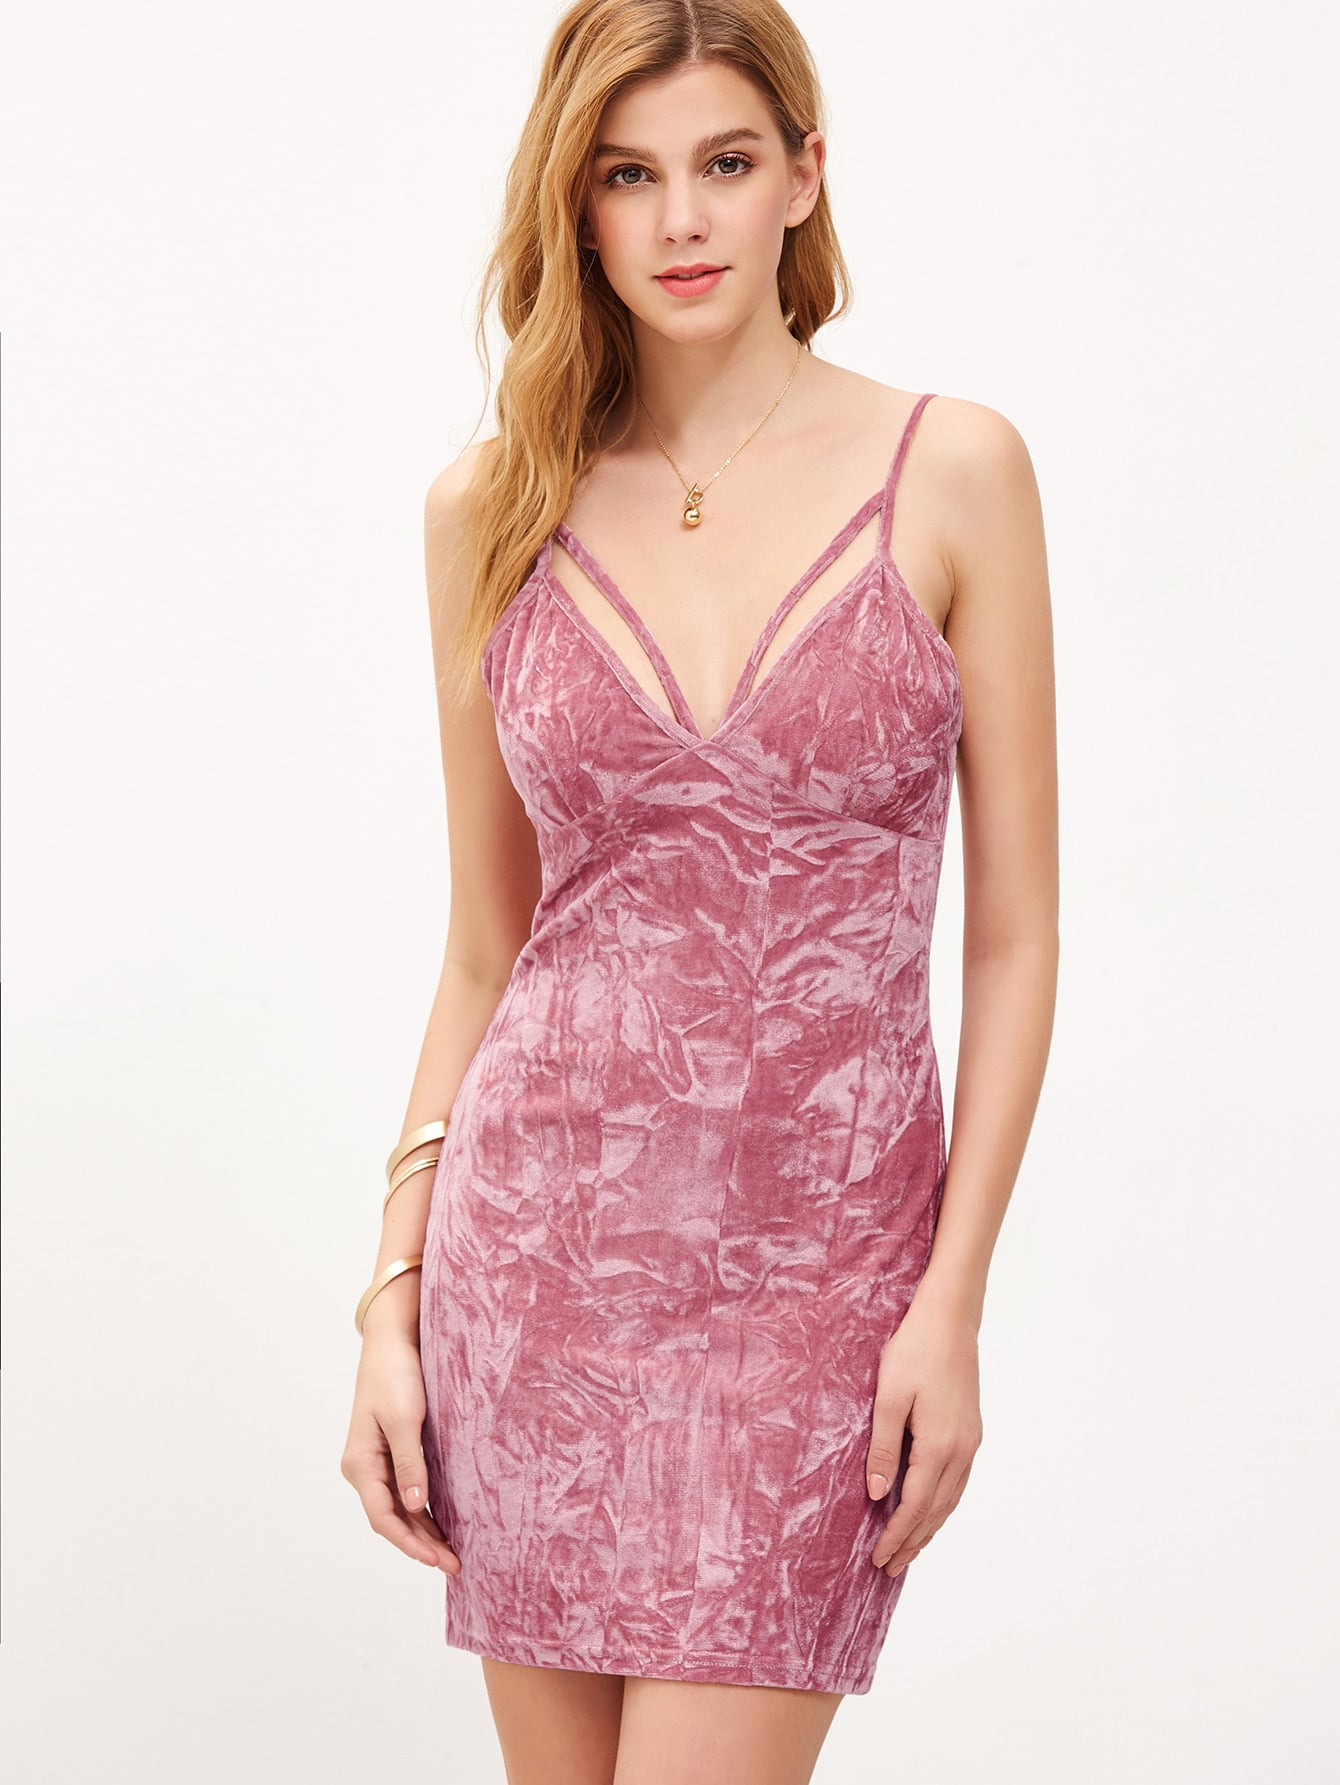 Strappy Plunging V Neckline Crushed Velvet Cami Dress